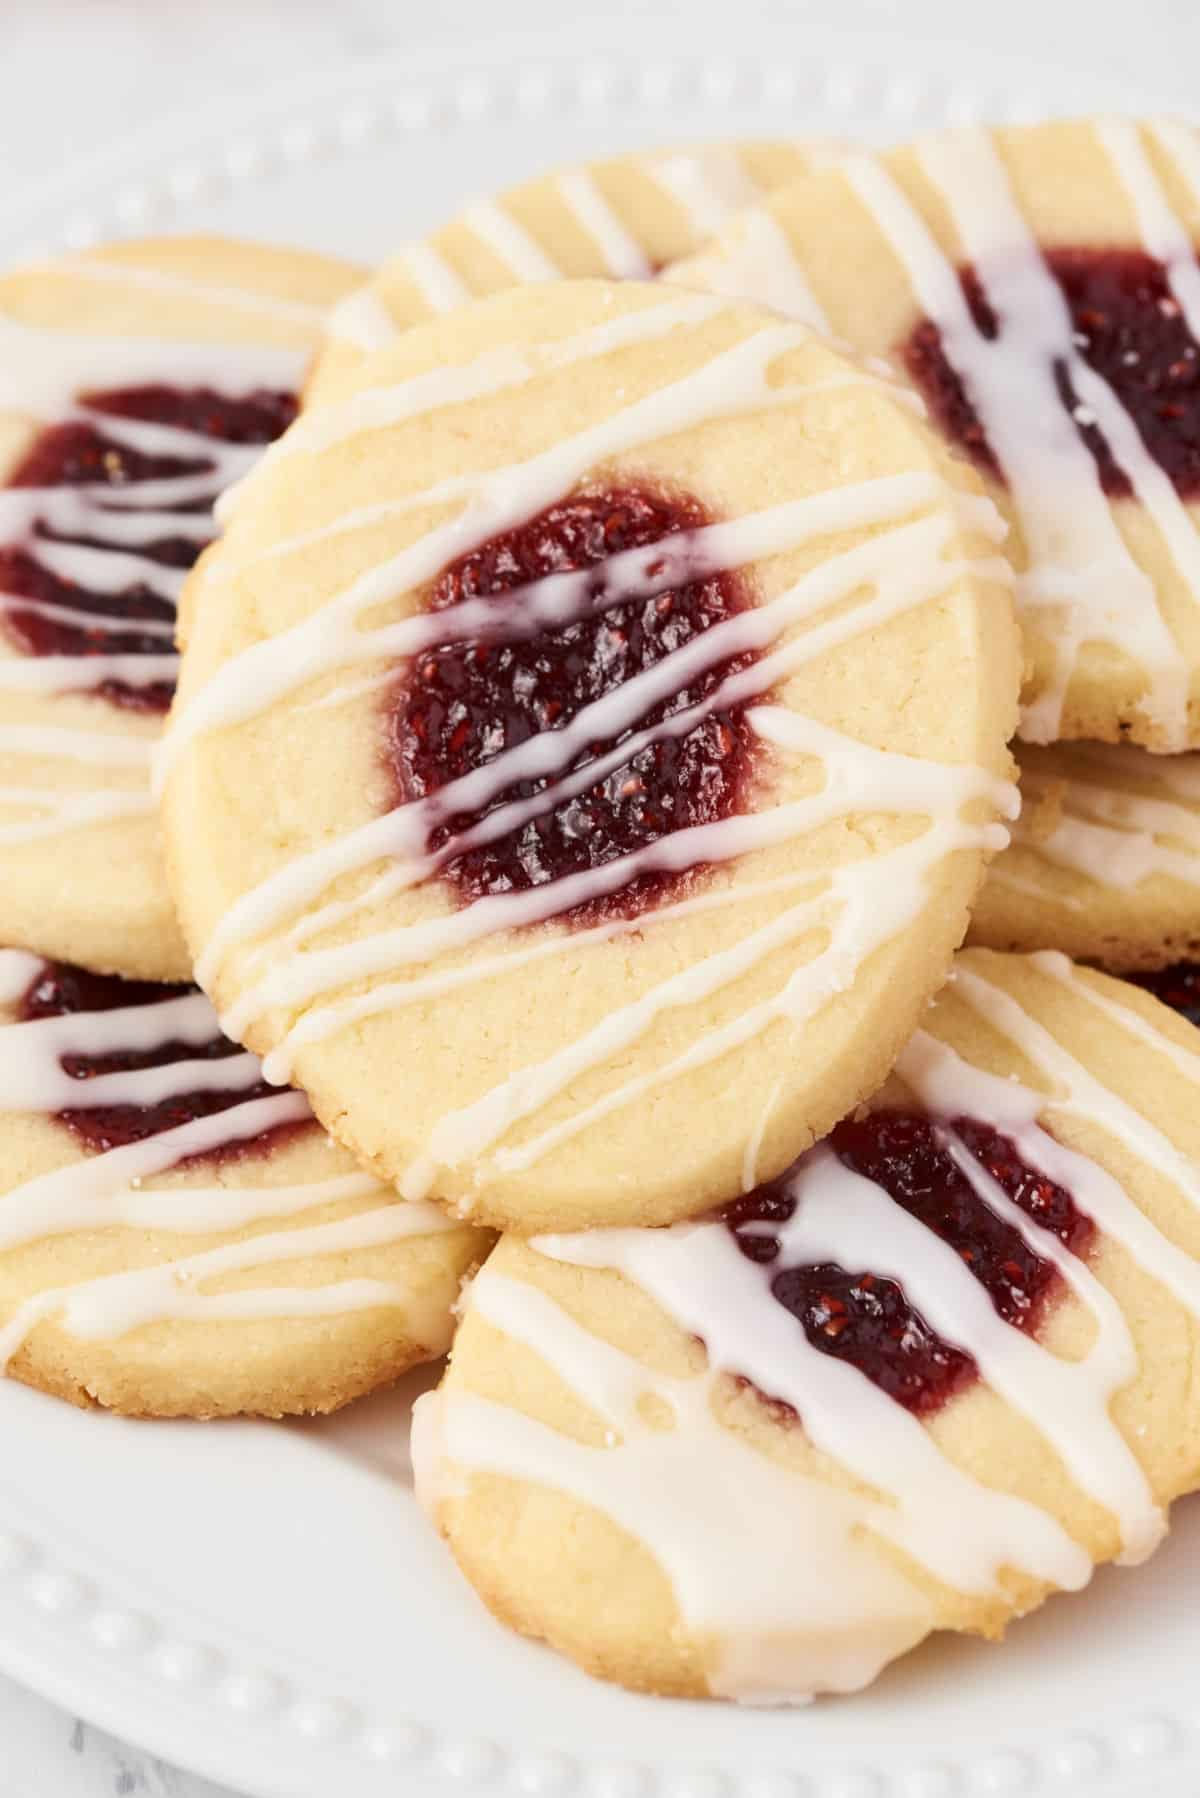 Thumbprint cookies with raspberry jam and vanilla icing drizzle.